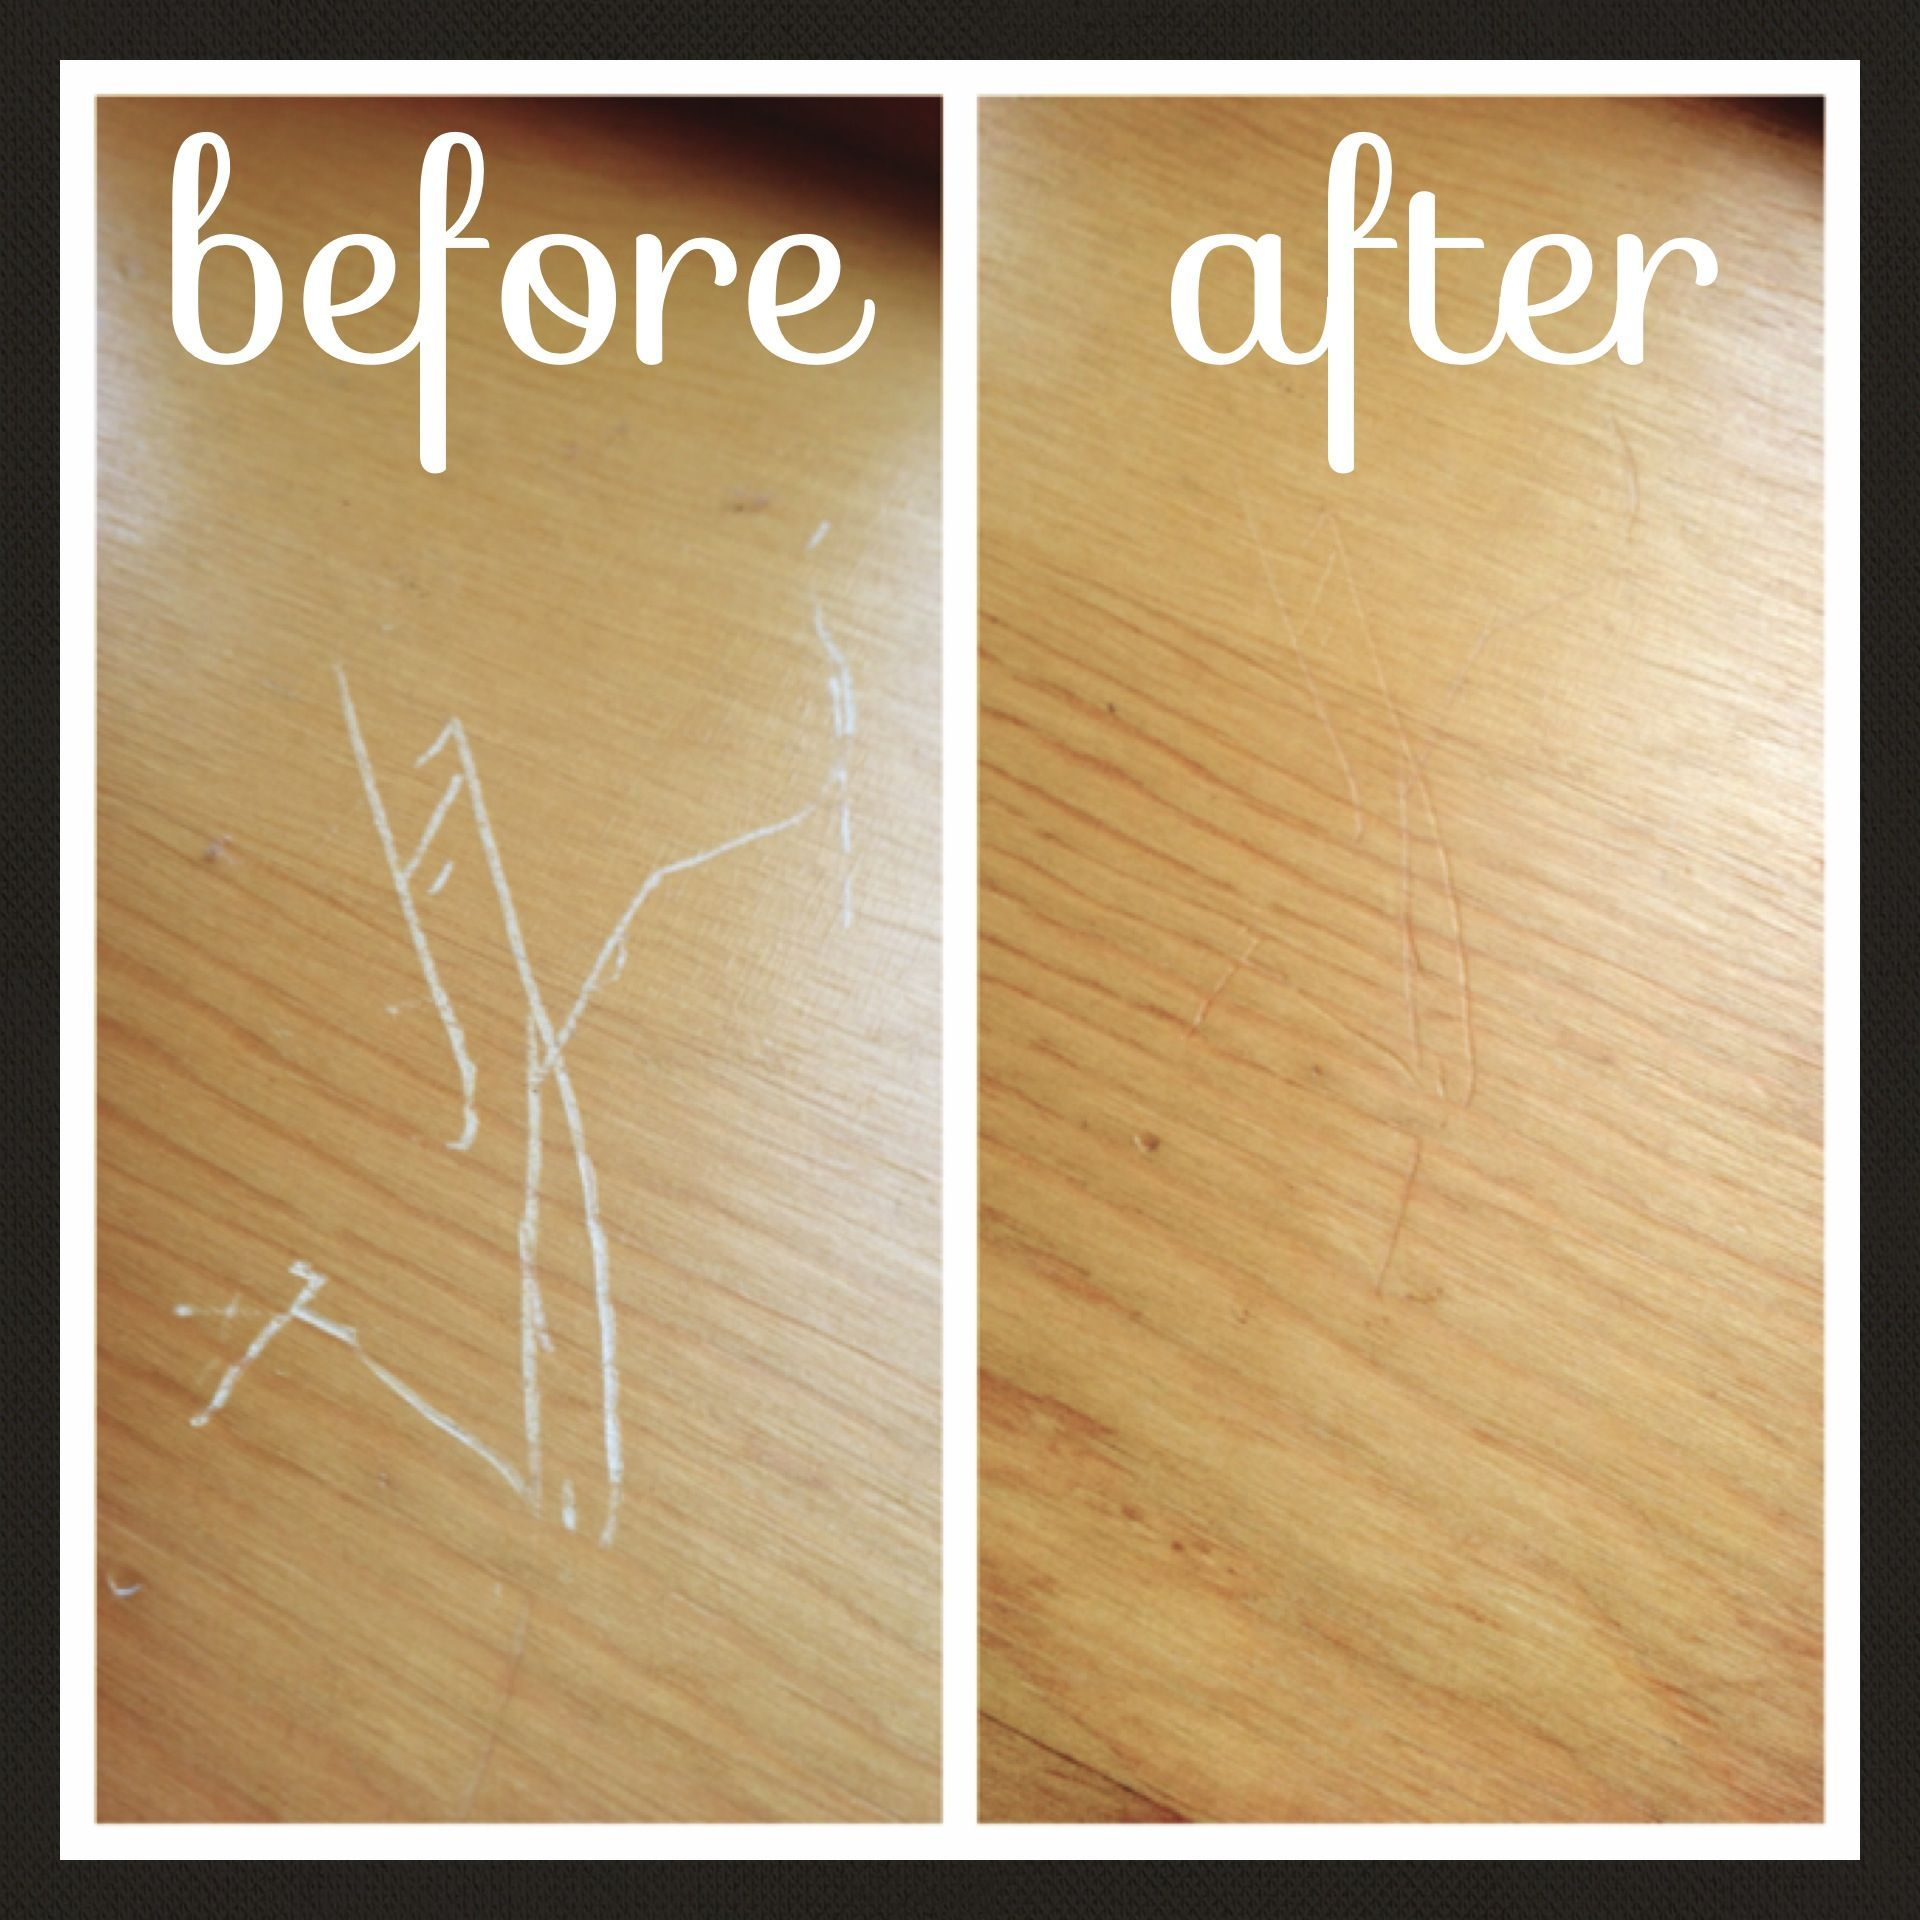 Use A Cashew Almondwalnut To Fix Scratches On Wood I Rubbed The